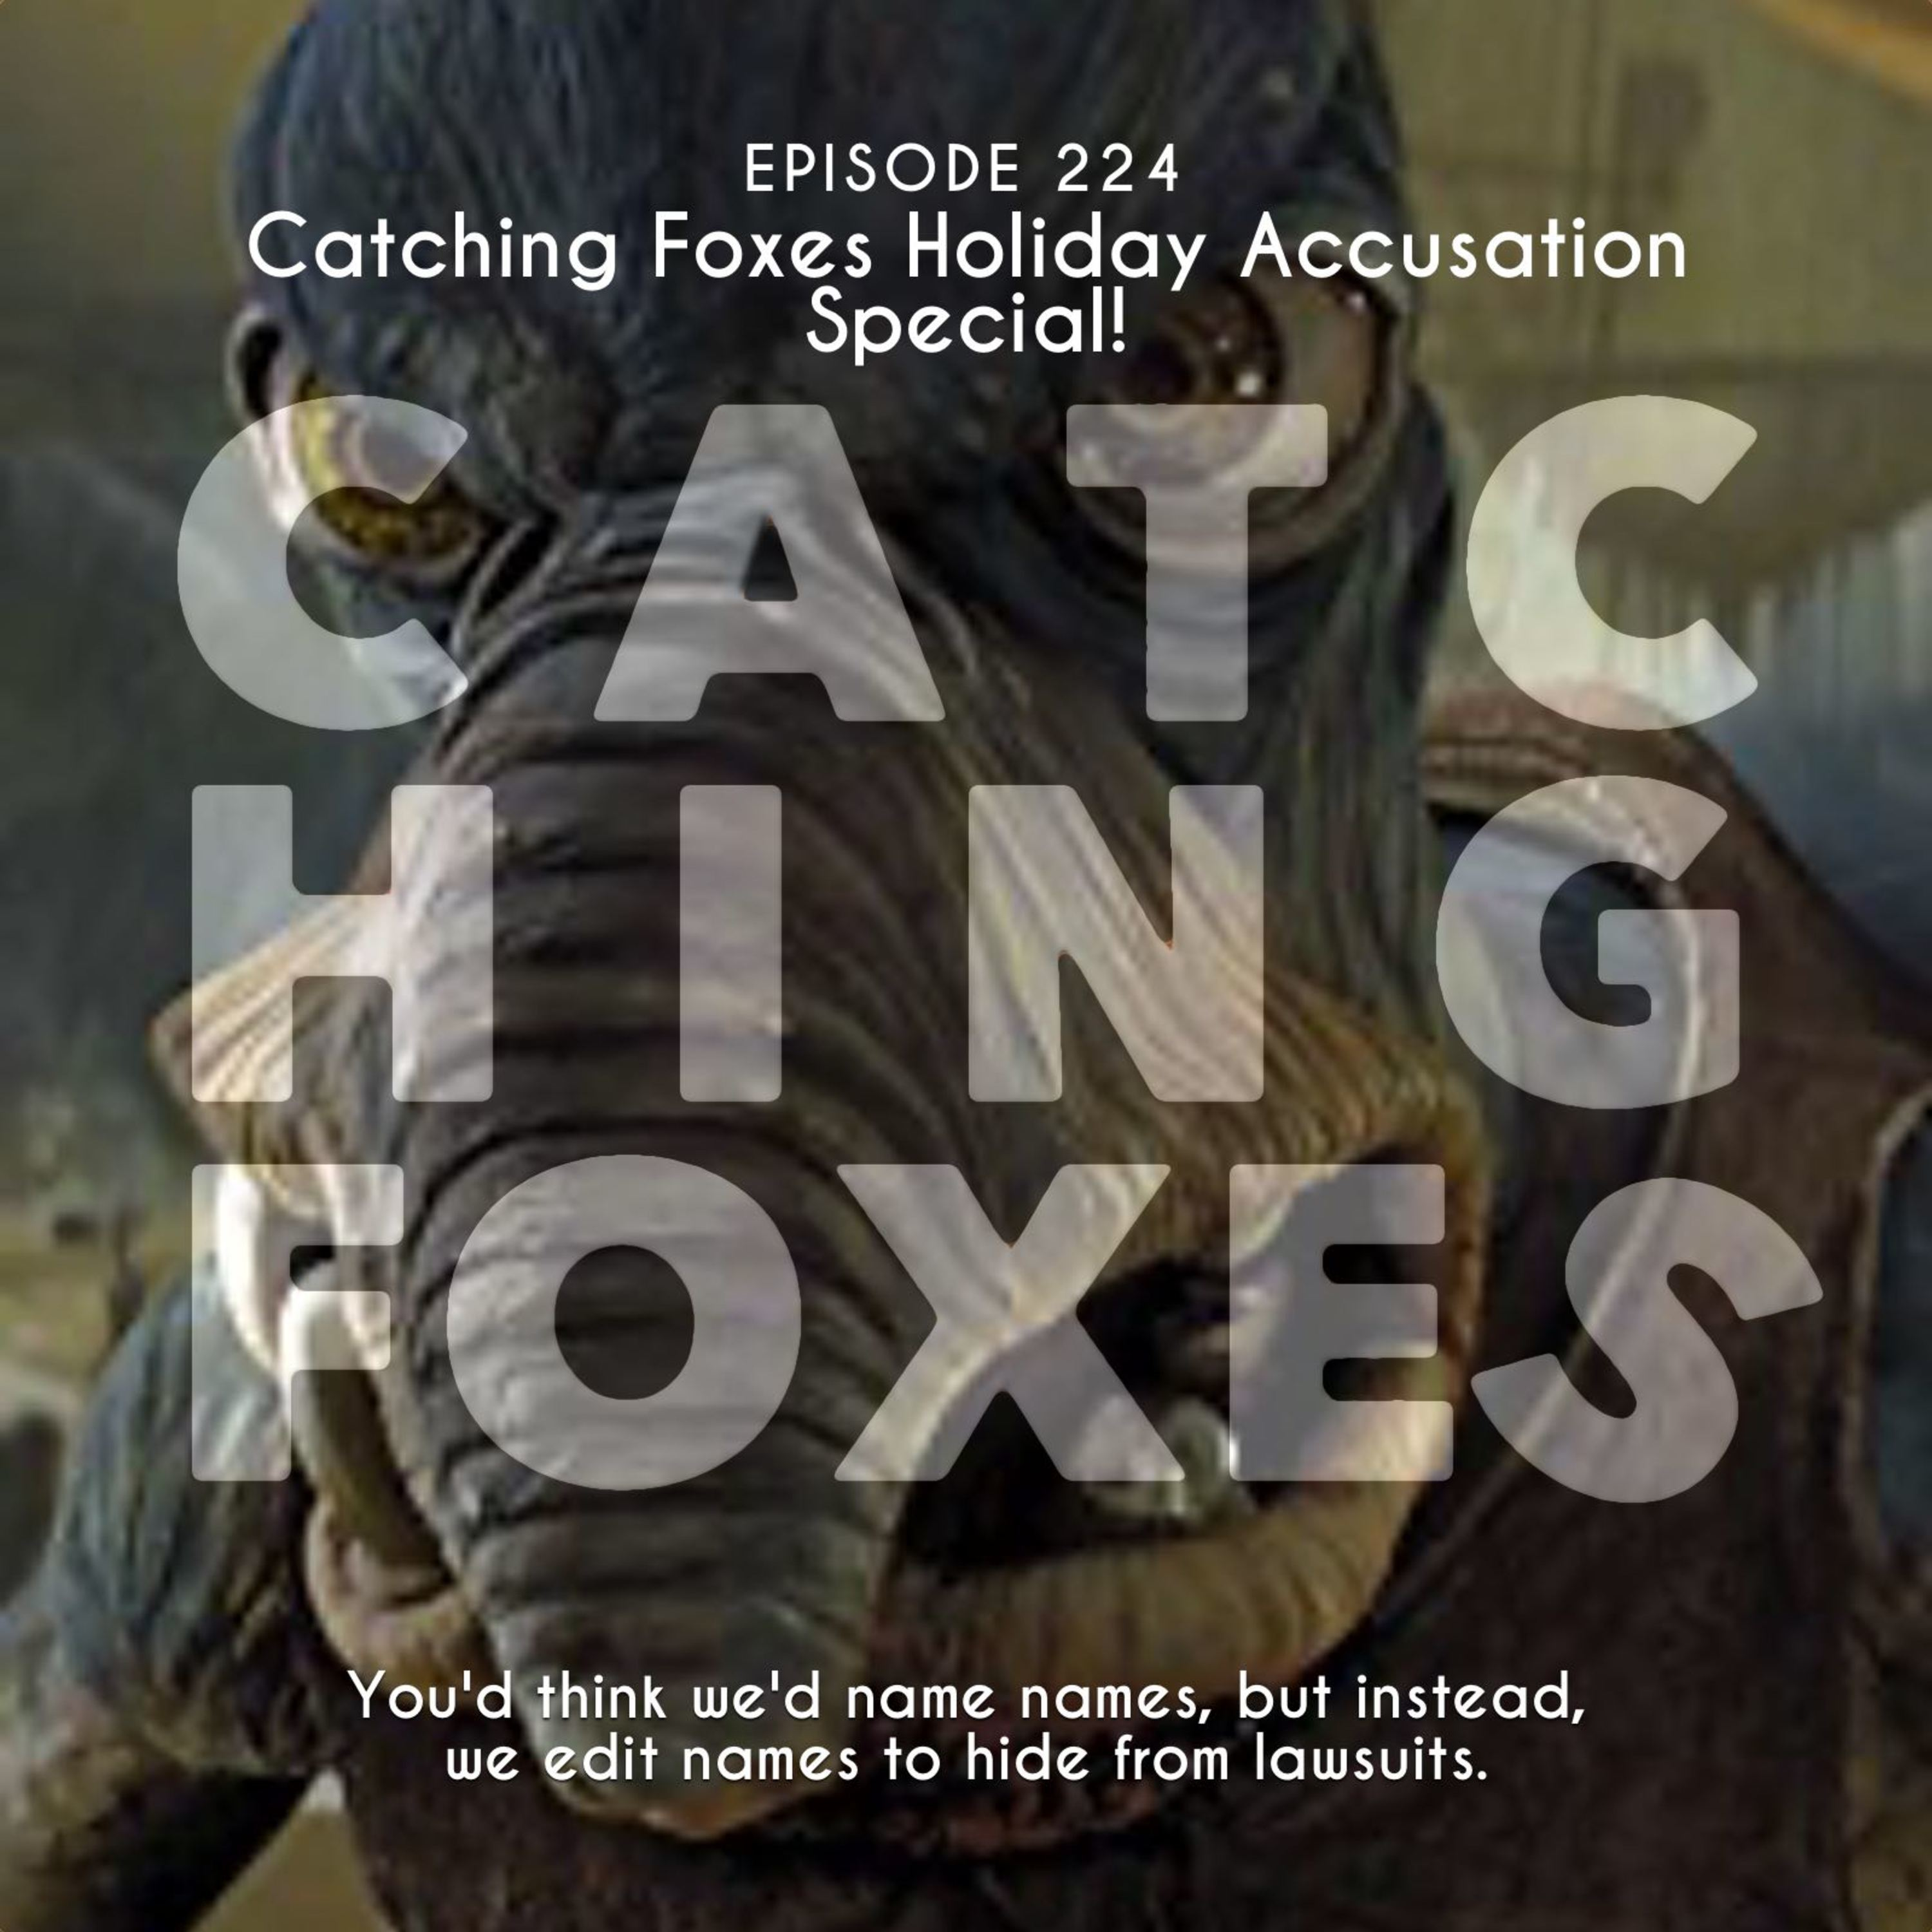 Catching Foxes Holiday Accusation Special!